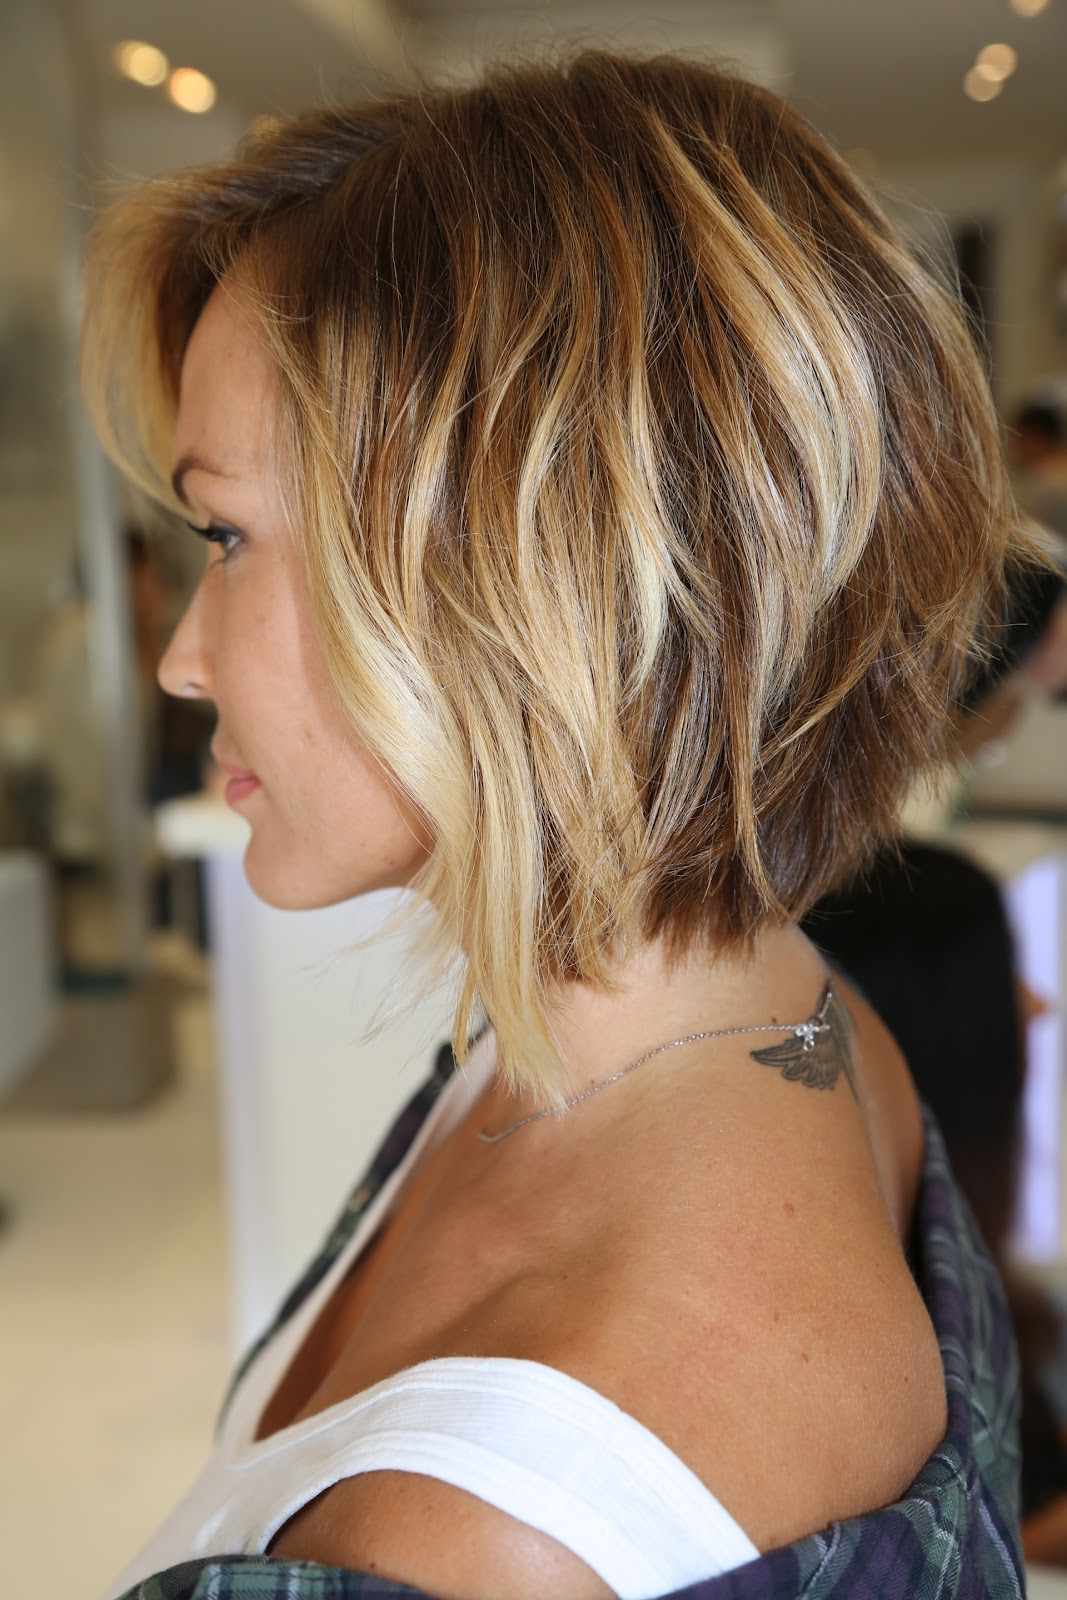 Irena Miami Summer Flirty Bob Cut